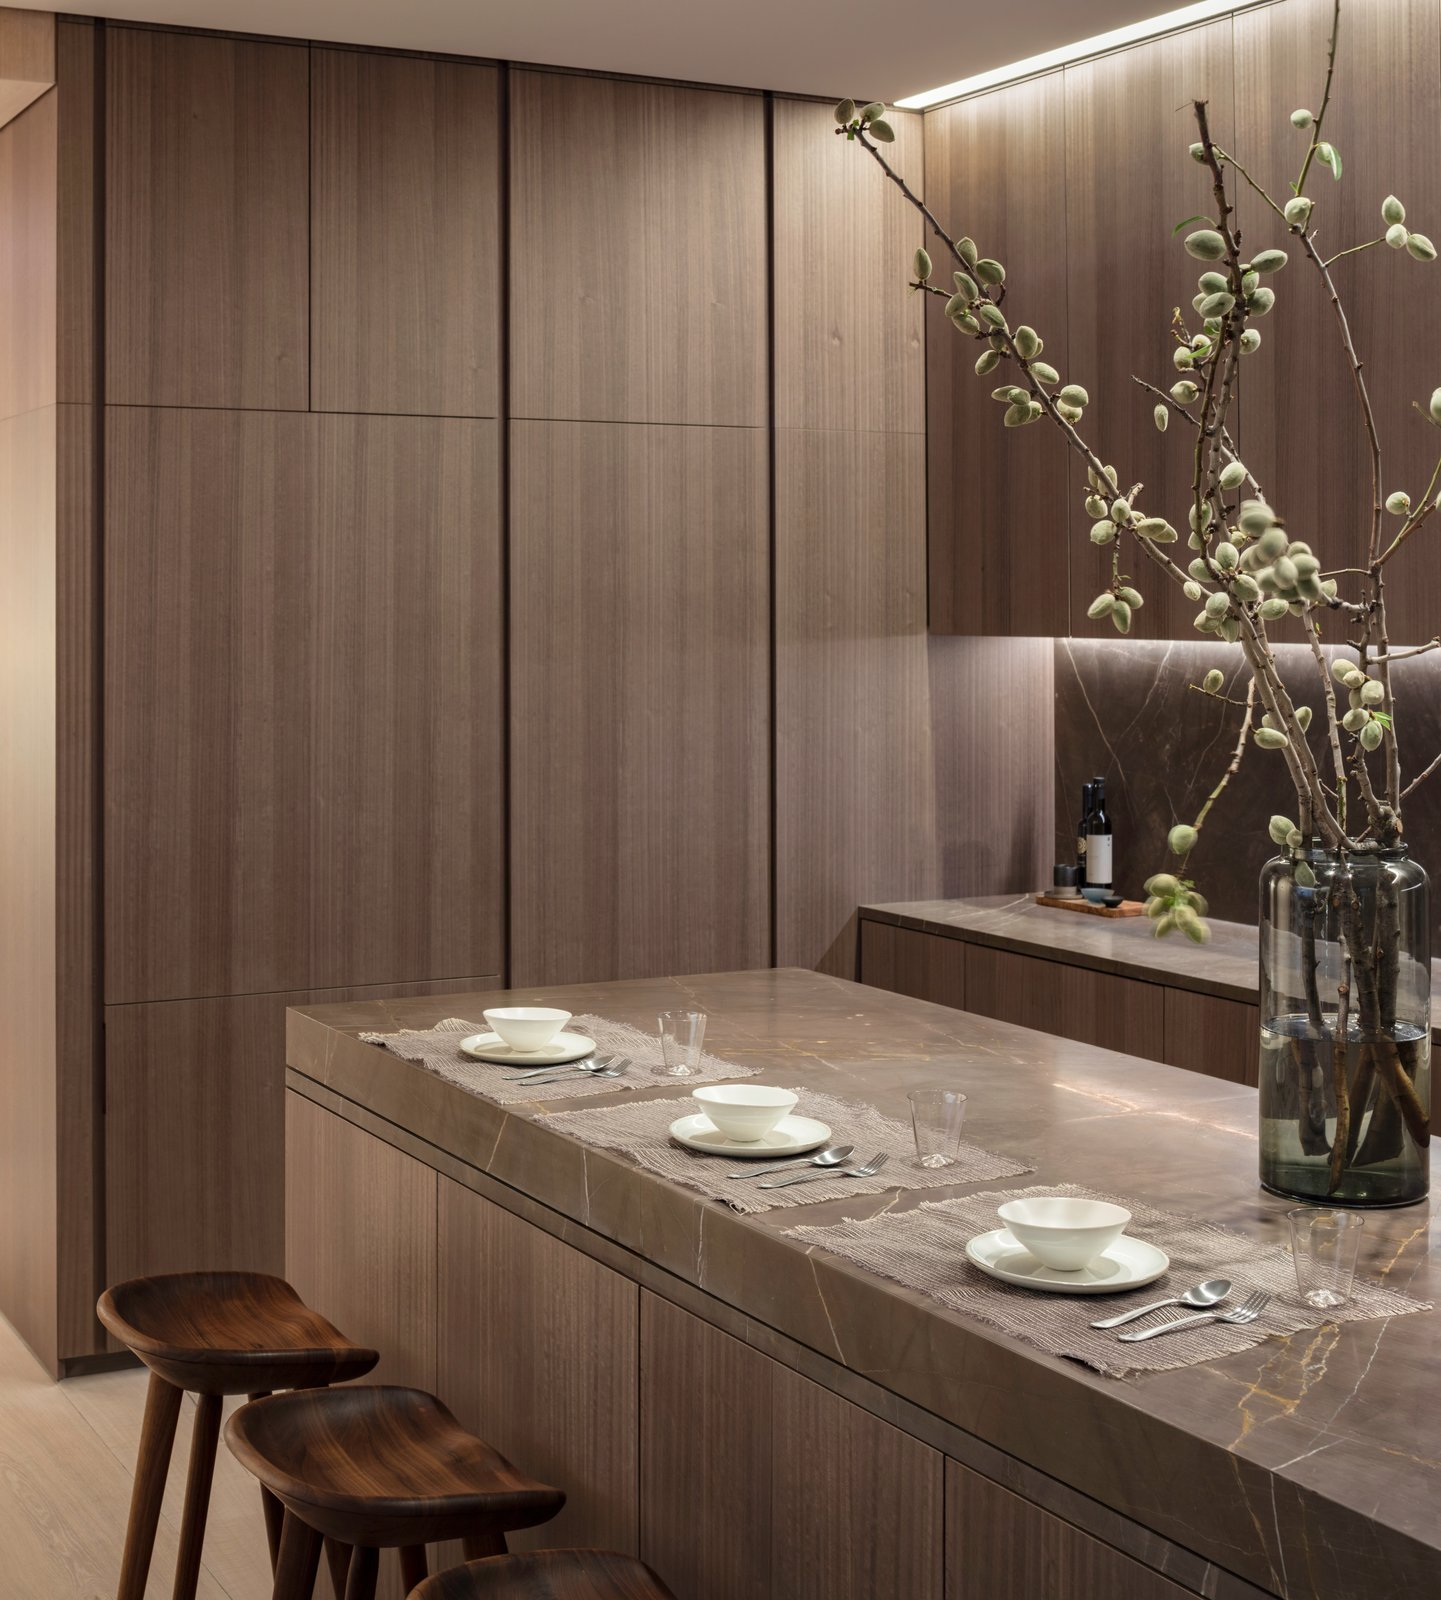 The kitchen offers enhanced flexibility with a custom sliding Fango marble countertop by the Italian brand Minimal.  Photo 5 of 10 in A Look Into NYC's 152 Elizabeth Street, Tadao Ando's First Residential Project Outside of Asia